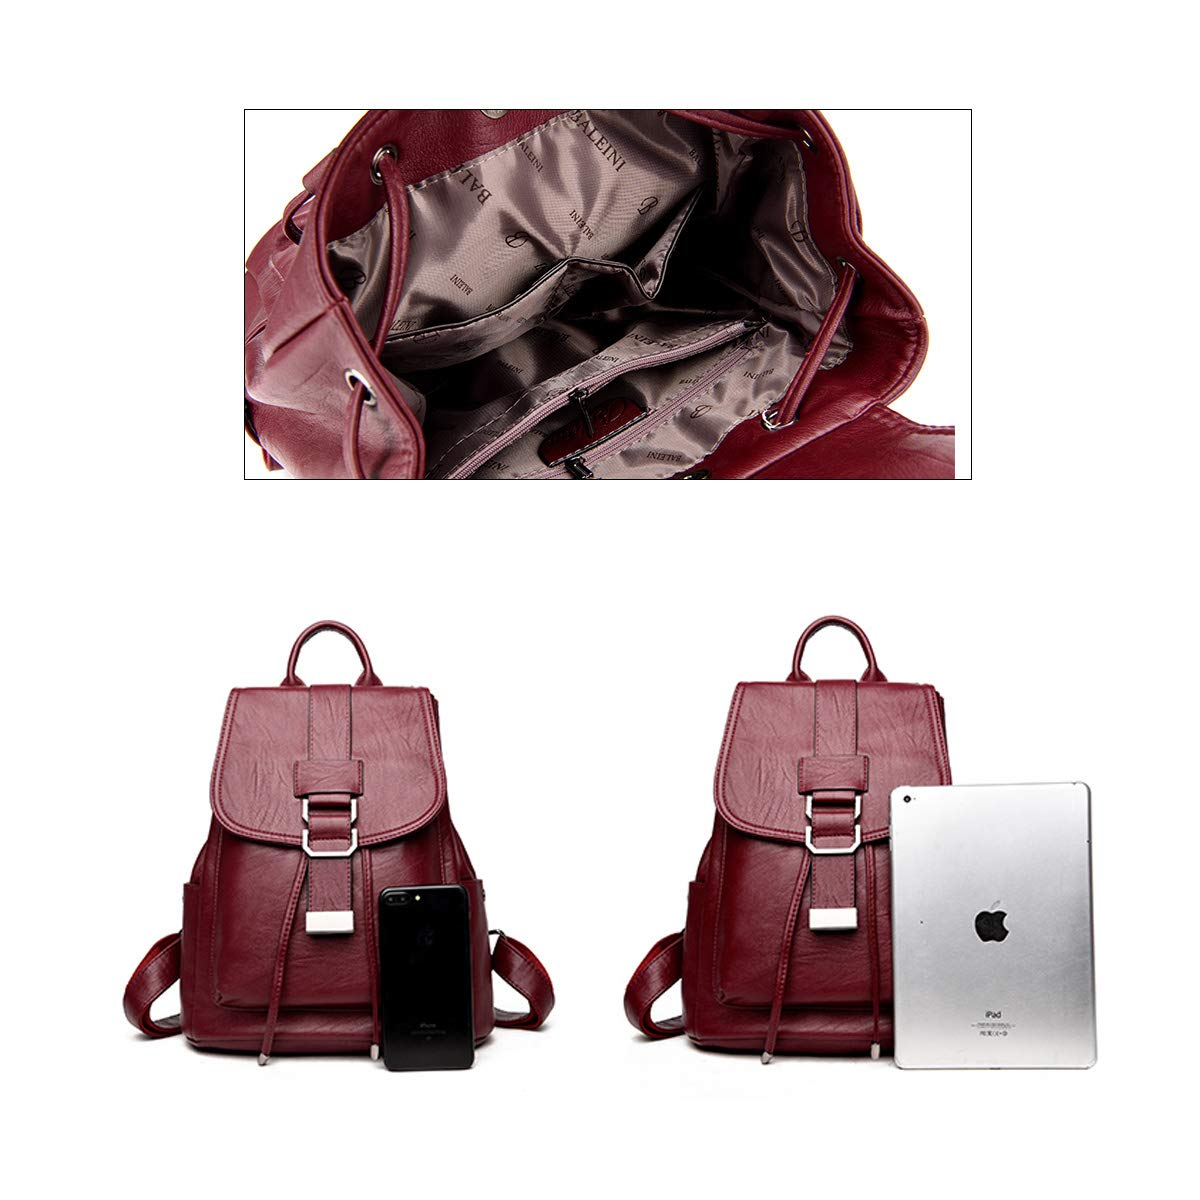 PU Leather Simple and Stylish 2019 New Hengtongtongxun Girls Multifunctional Backpack for Daily Travel//Outdoor//Travel//School//Work//Fashion//Leisure Black//Blue//Red//Purple//Bronze